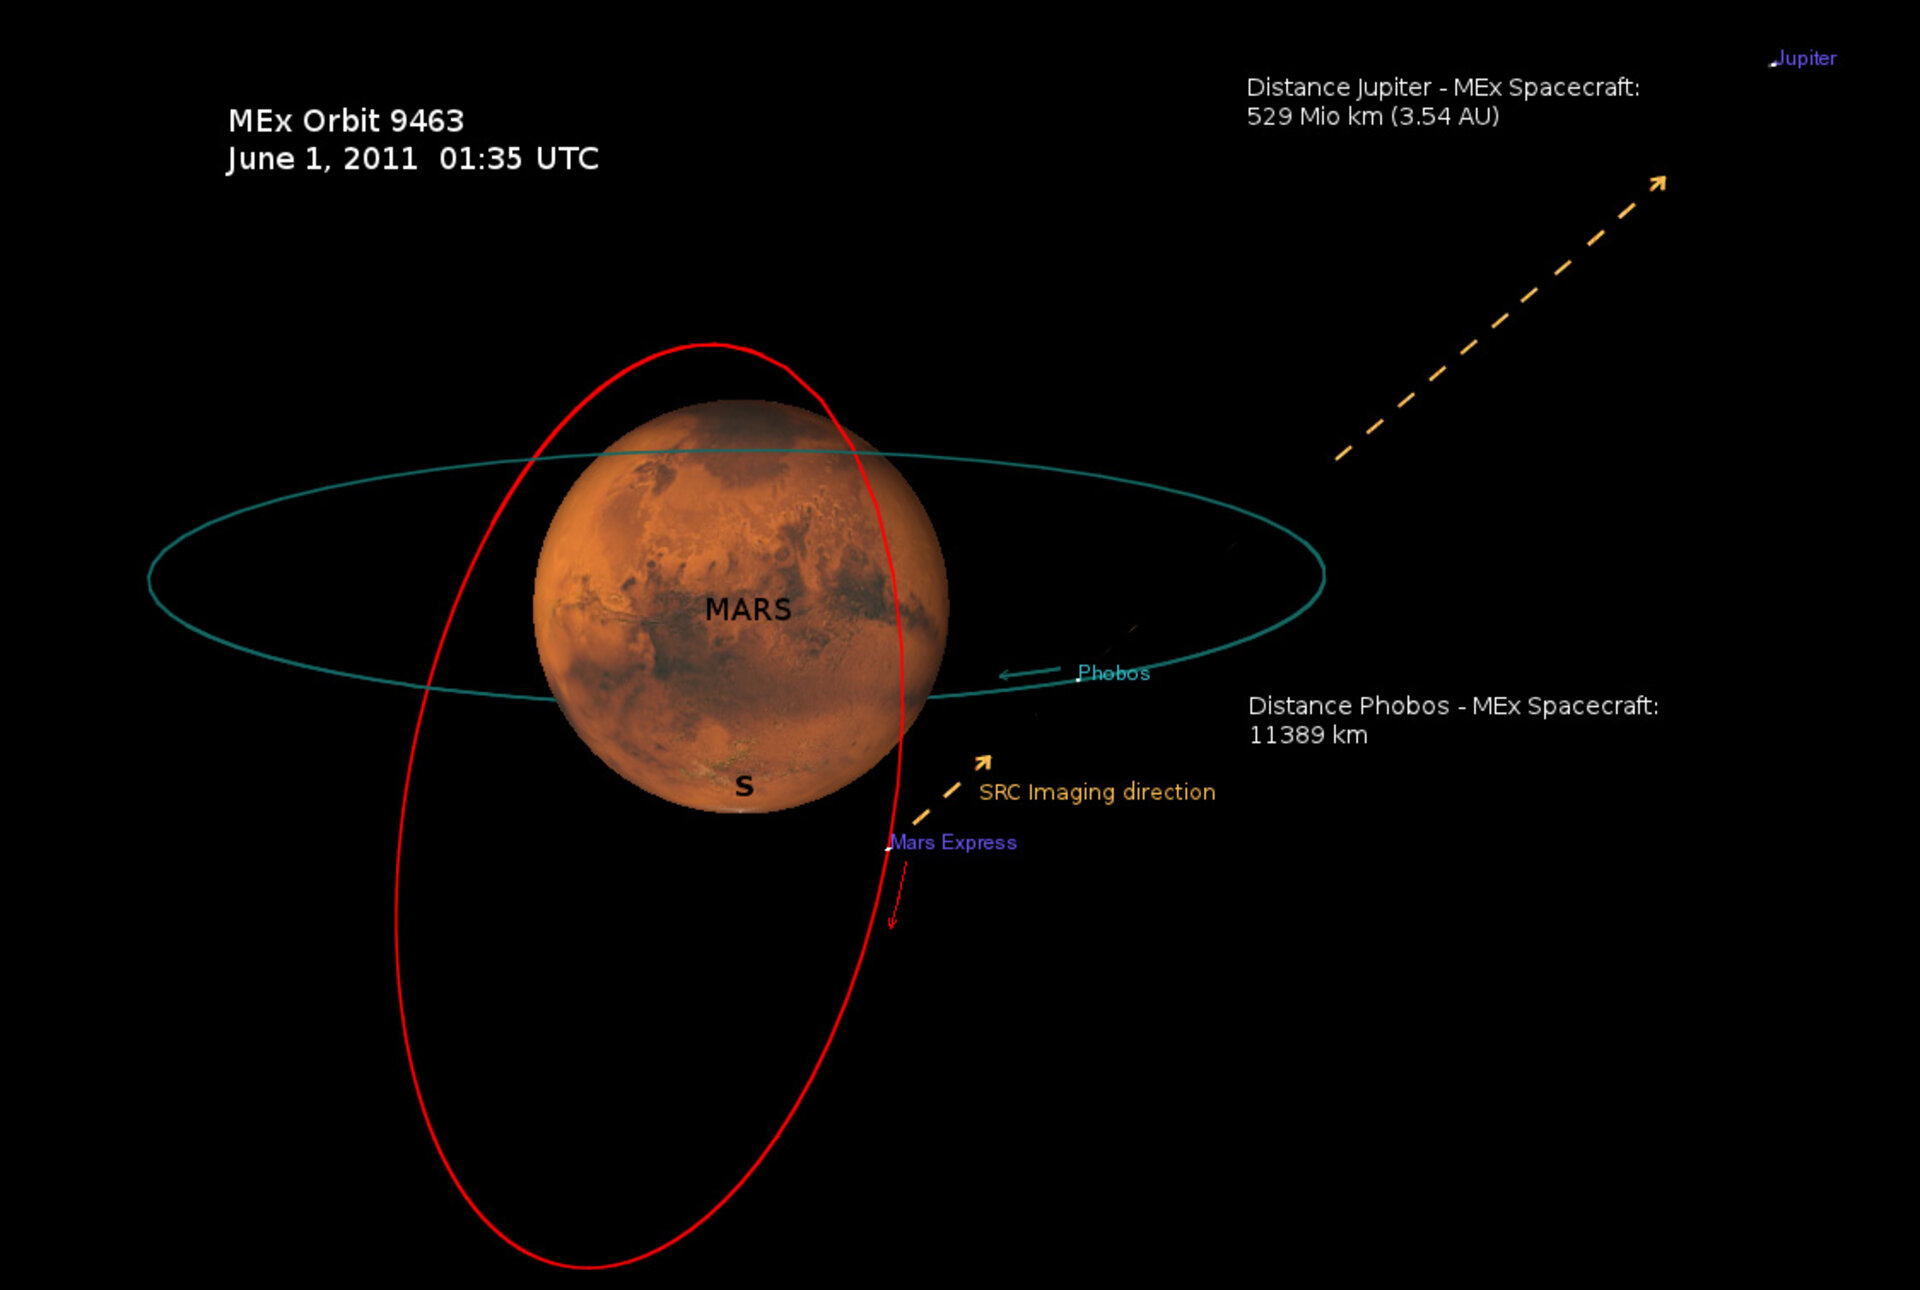 Paths of Phobos and Mars Express